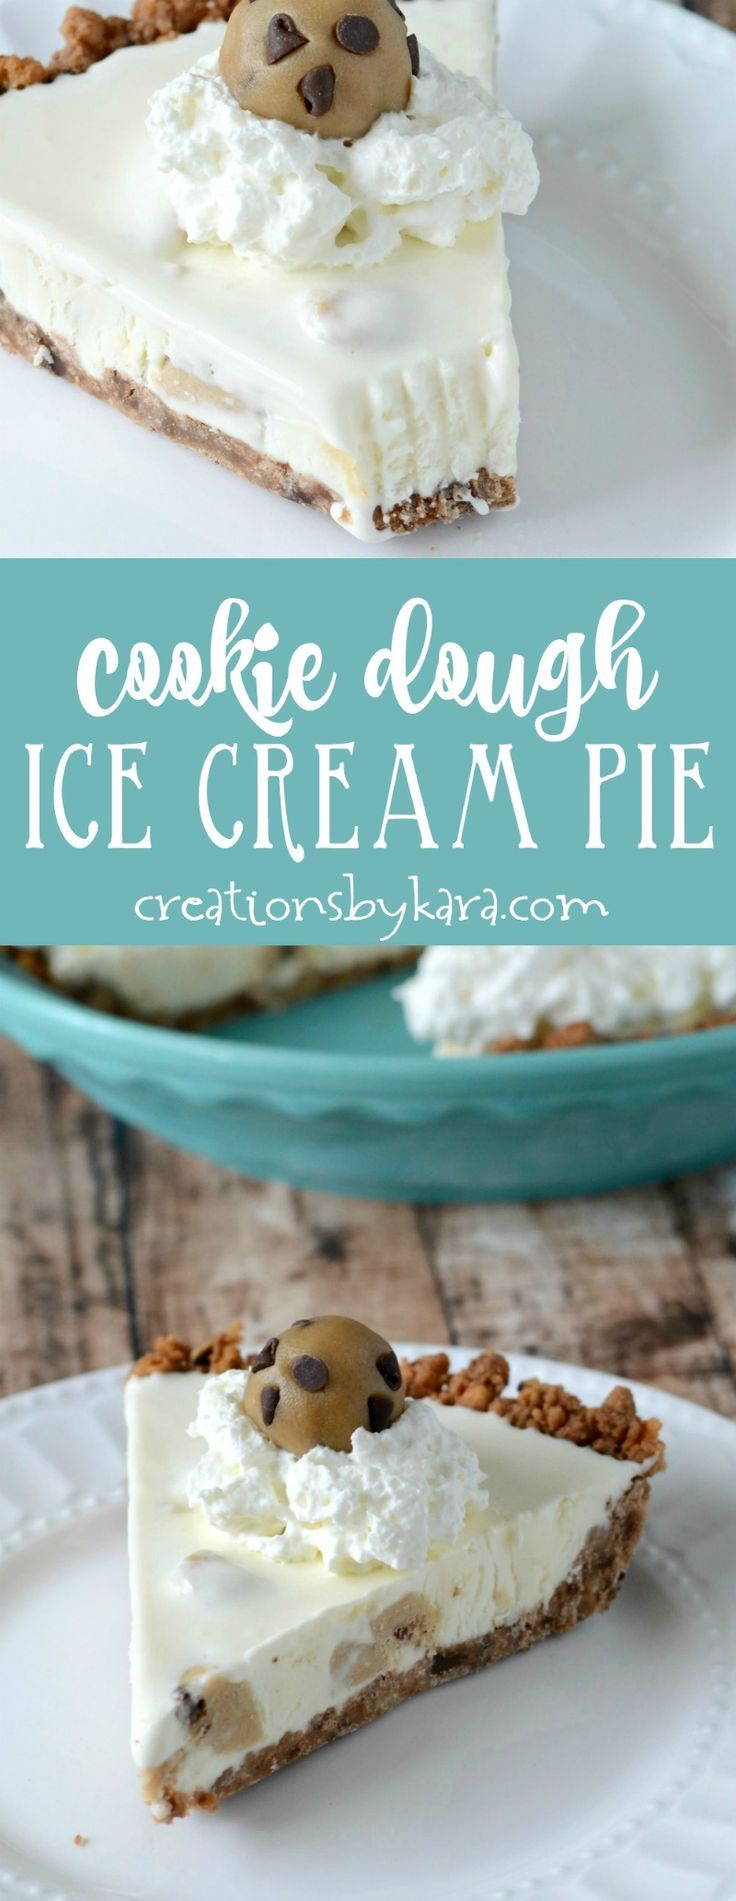 Recipe for Chocolate Chip Cookie Dough Ice Cream Pie - if you love cookie dough, you must try this dessert! Perfect for cookie dough fans. from creationsbykara.com